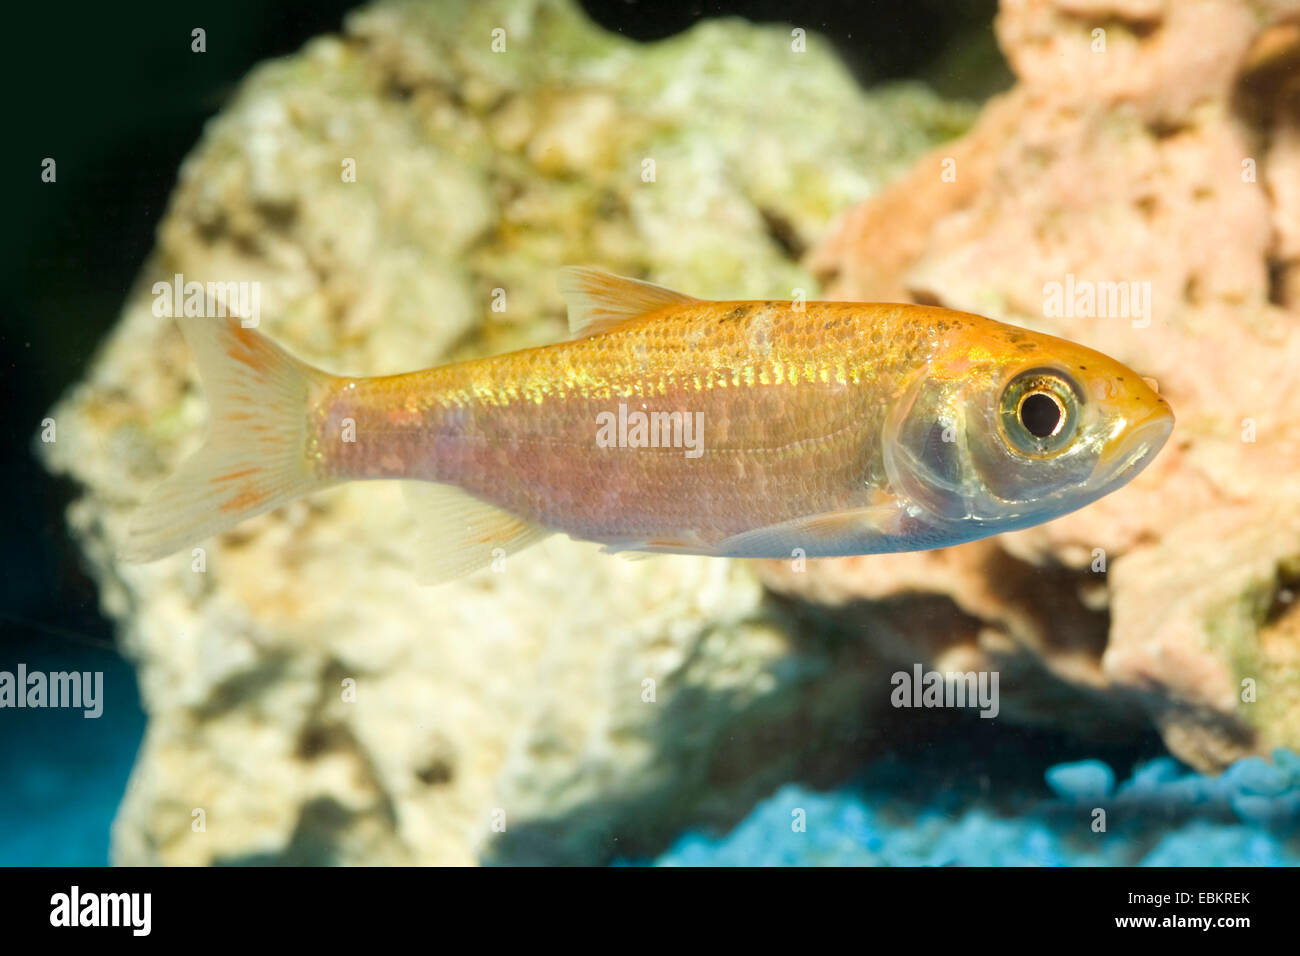 Ide, Orfe (Leuciscus idus), breeding form gold Stock Photo